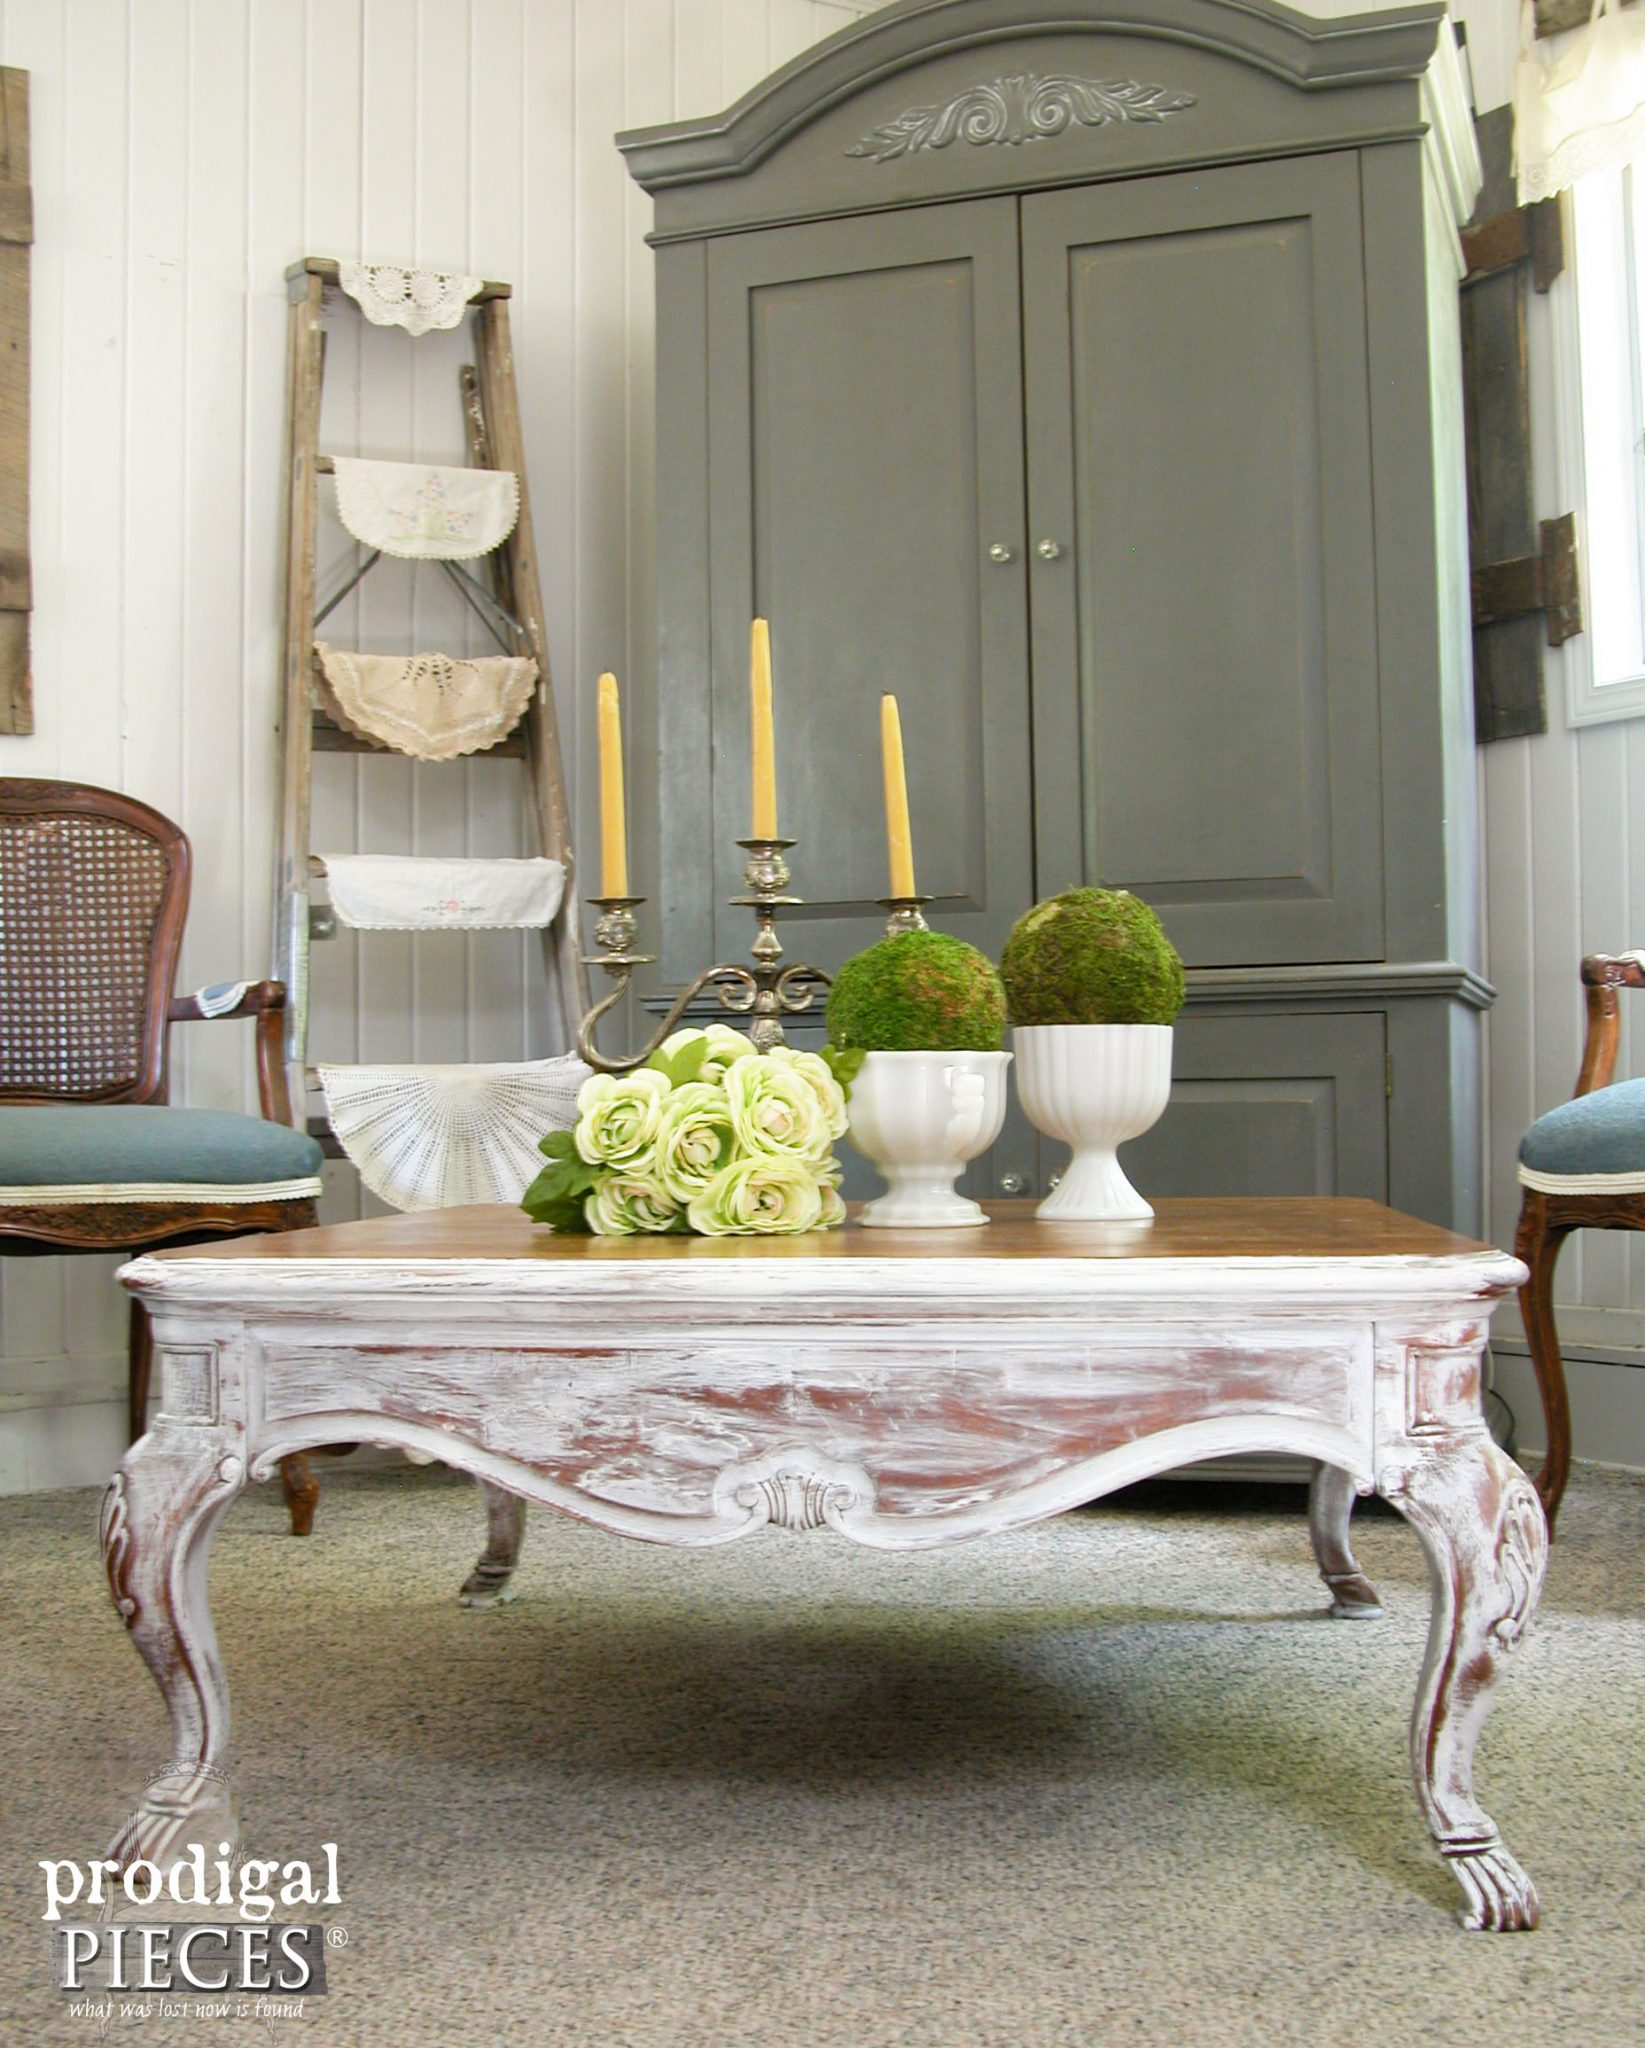 Claw Foot Coffee Table with French Country Style by Prodigal Pieces | prodigalpieces.com